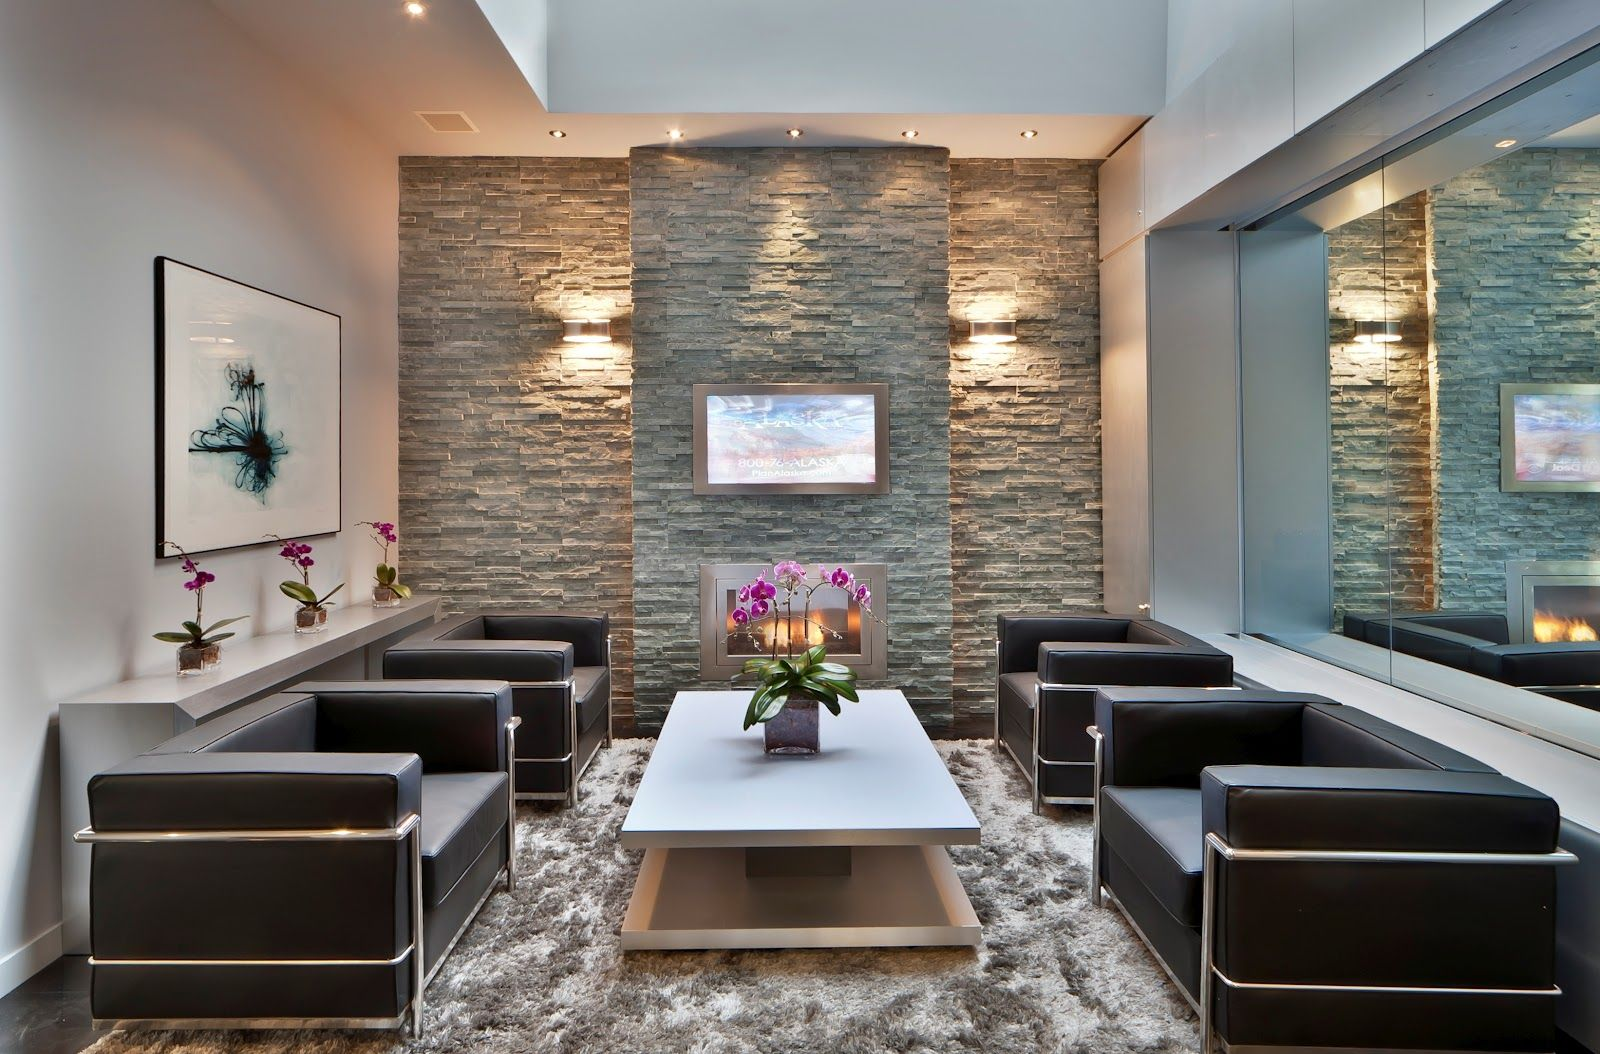 Modern Fireplace Good Ideas For Living Room Decoration Using Grey Stone Veneer Heart Along With Double Wall Sconces And Furry Light